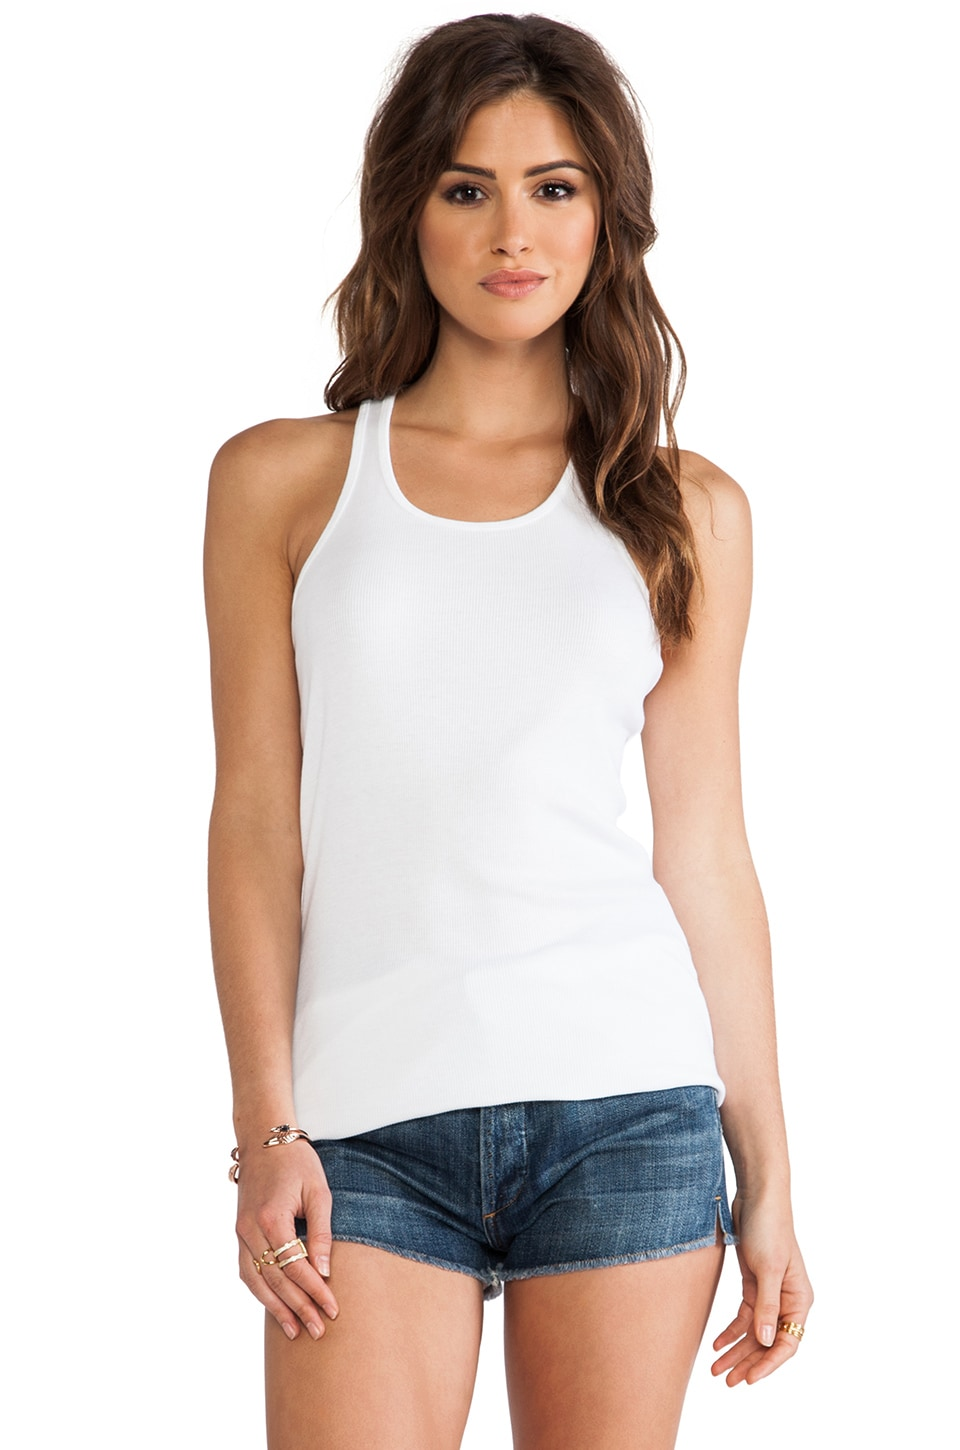 Splendid 2x1 Racer Back Tank in White